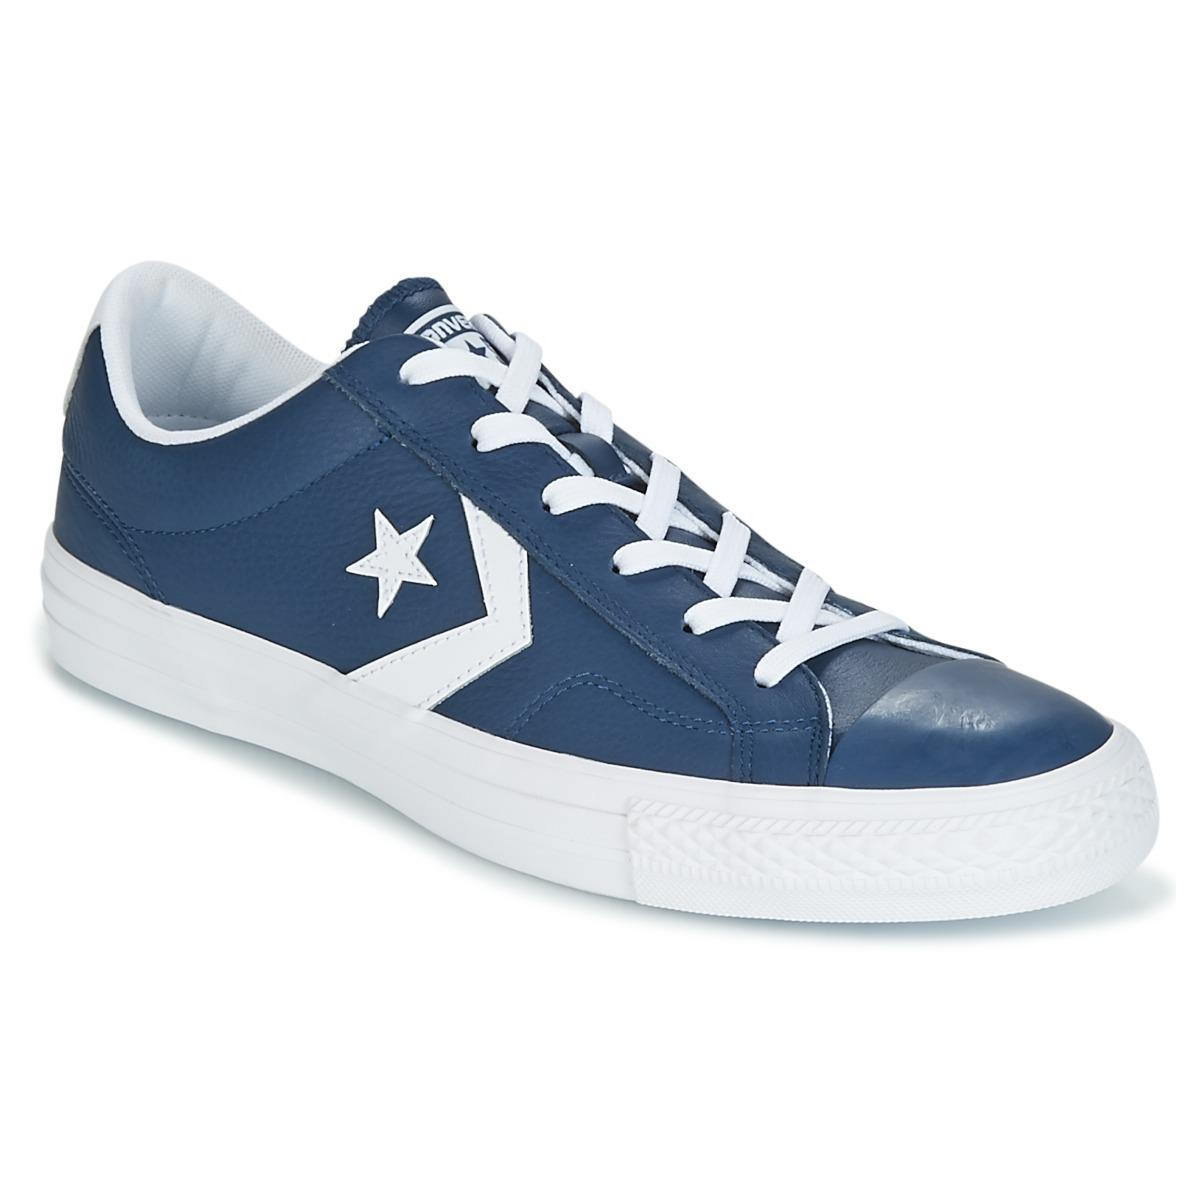 73f6c2e82df1f5 Converse - Star Player Ox Leather Essentials Men s Shoes (trainers) In Blue  for Men. View fullscreen